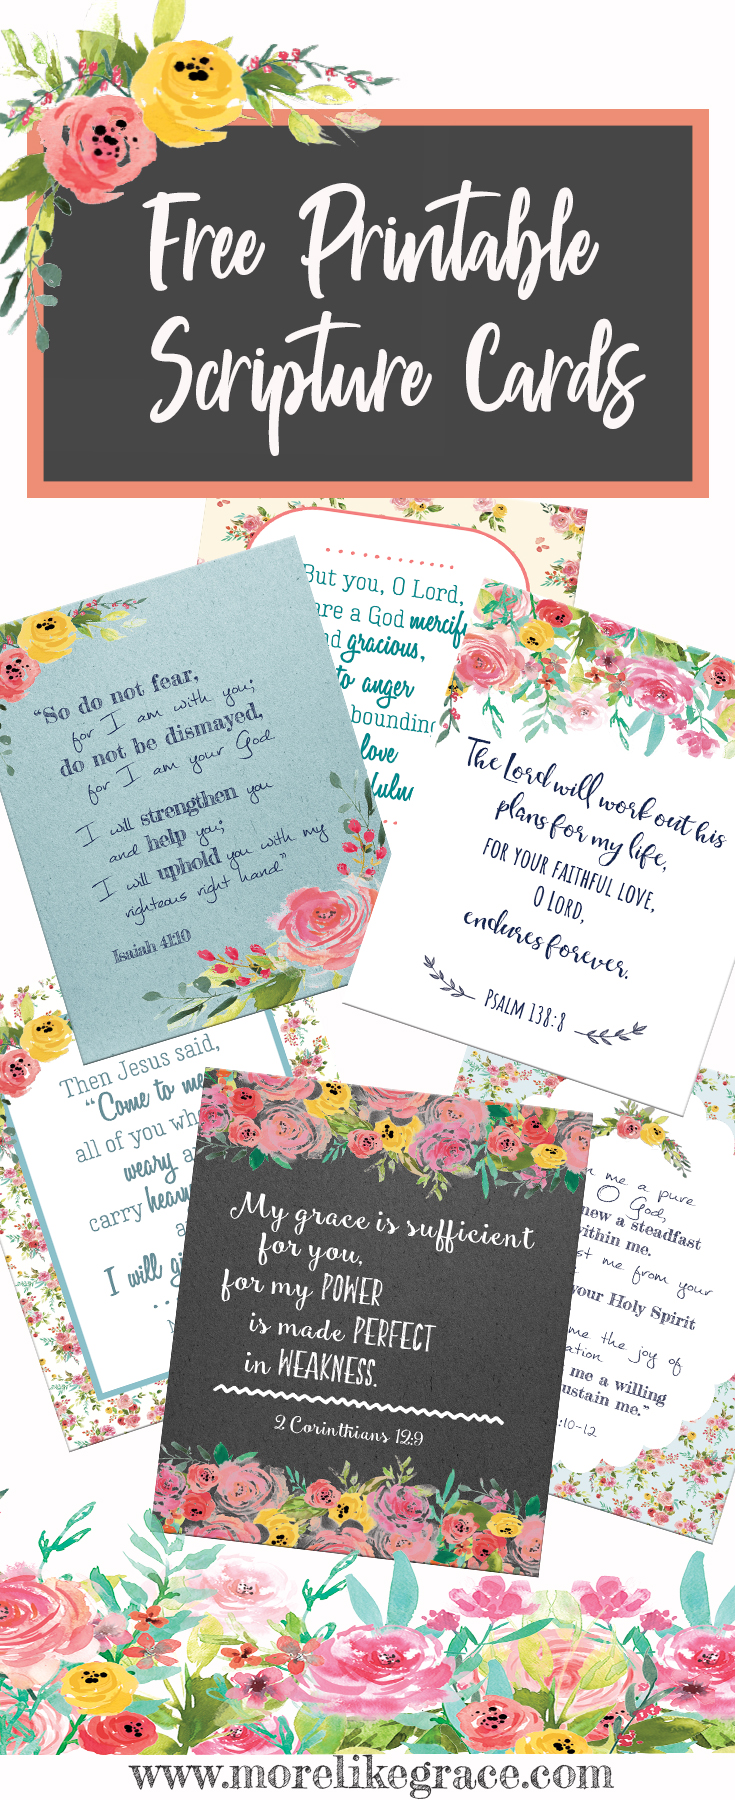 picture regarding Free Printable Scripture Cards titled Cost-free Printable Scripture Playing cards Even further Which include Grace